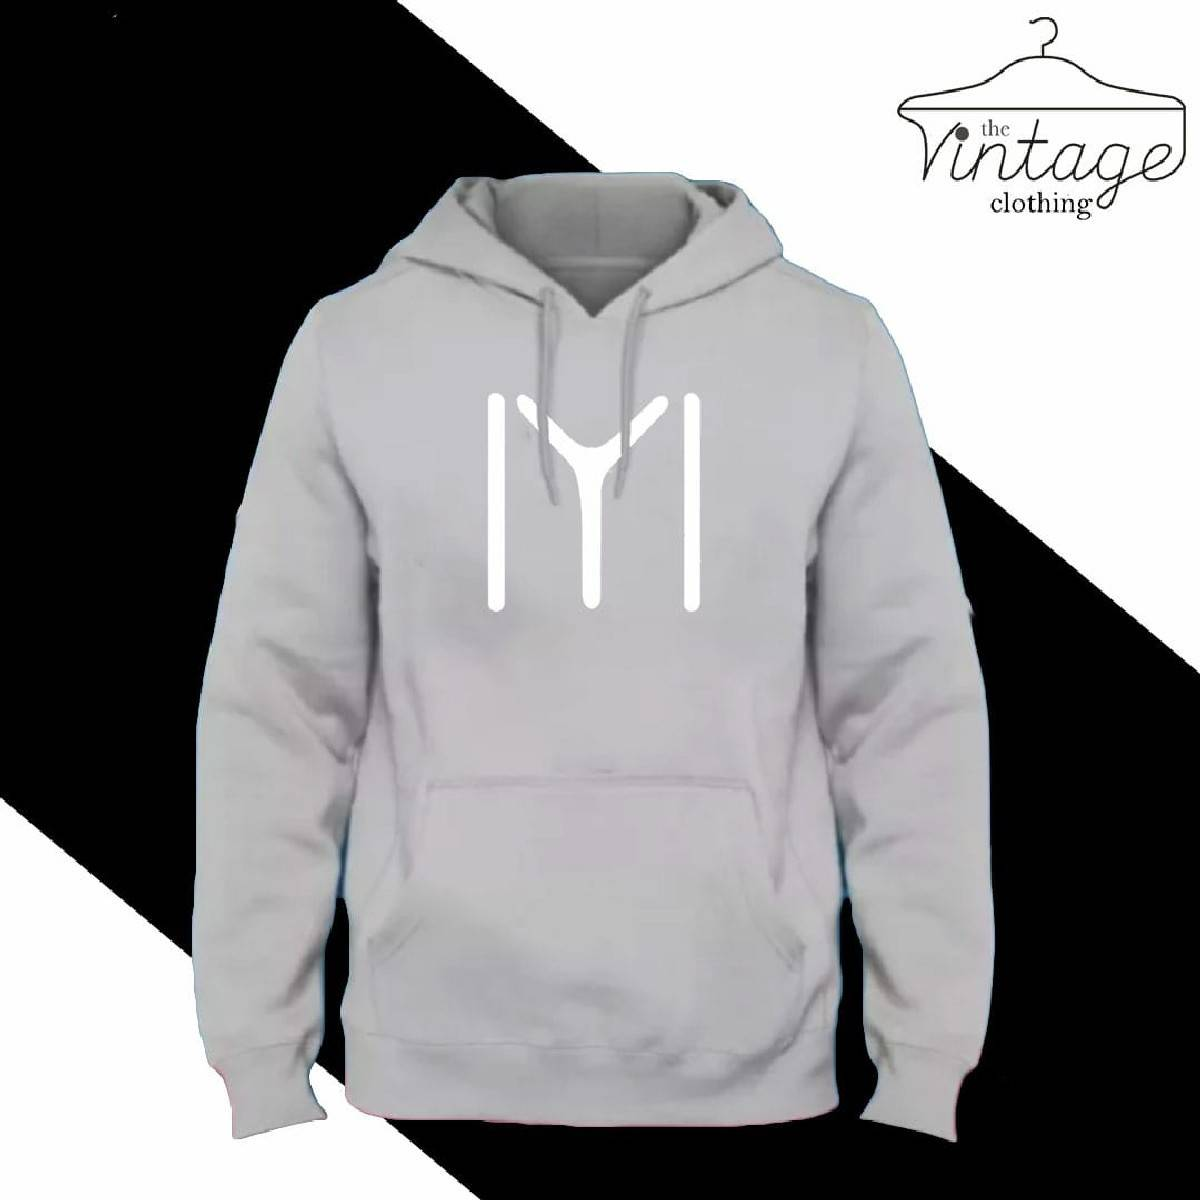 High quality imported casual ERTUGRUL printed Grey hoodie pullover